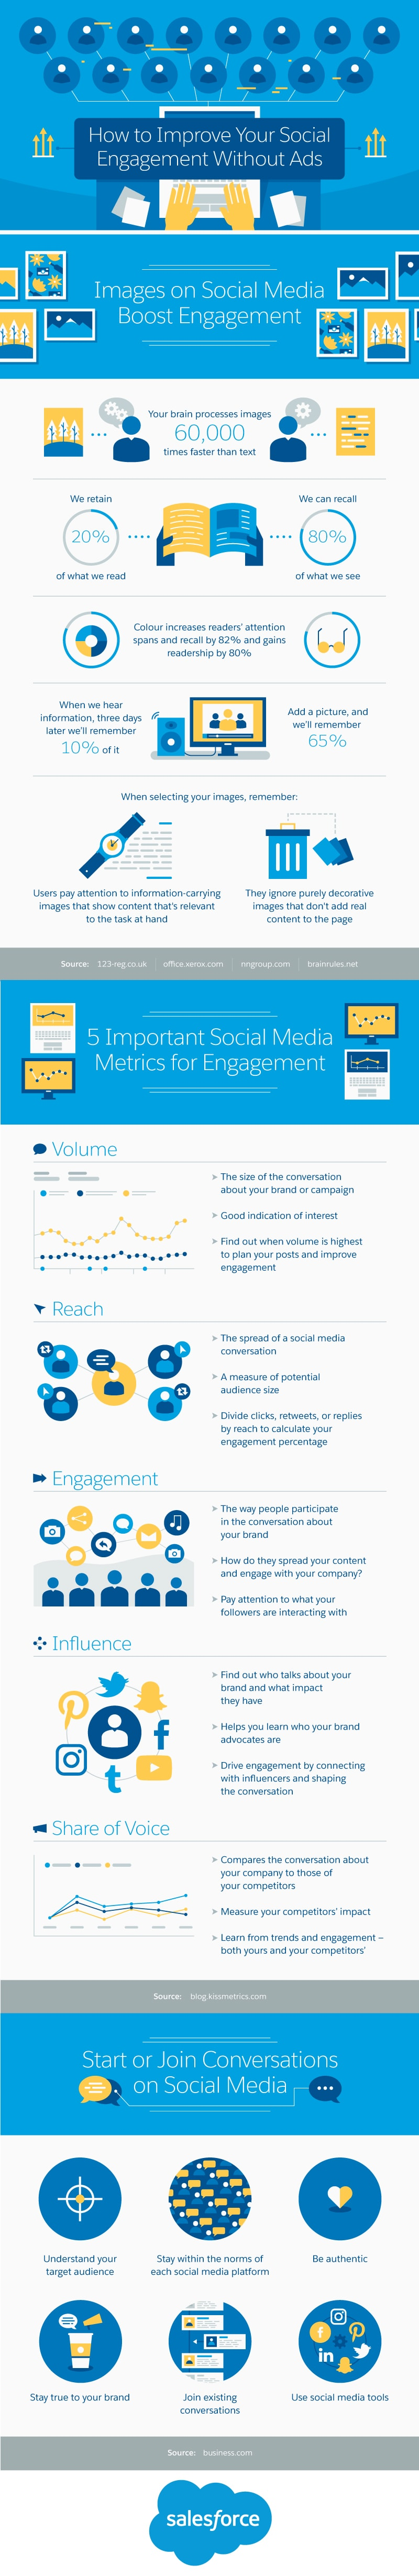 how to improve your social engagement without ads